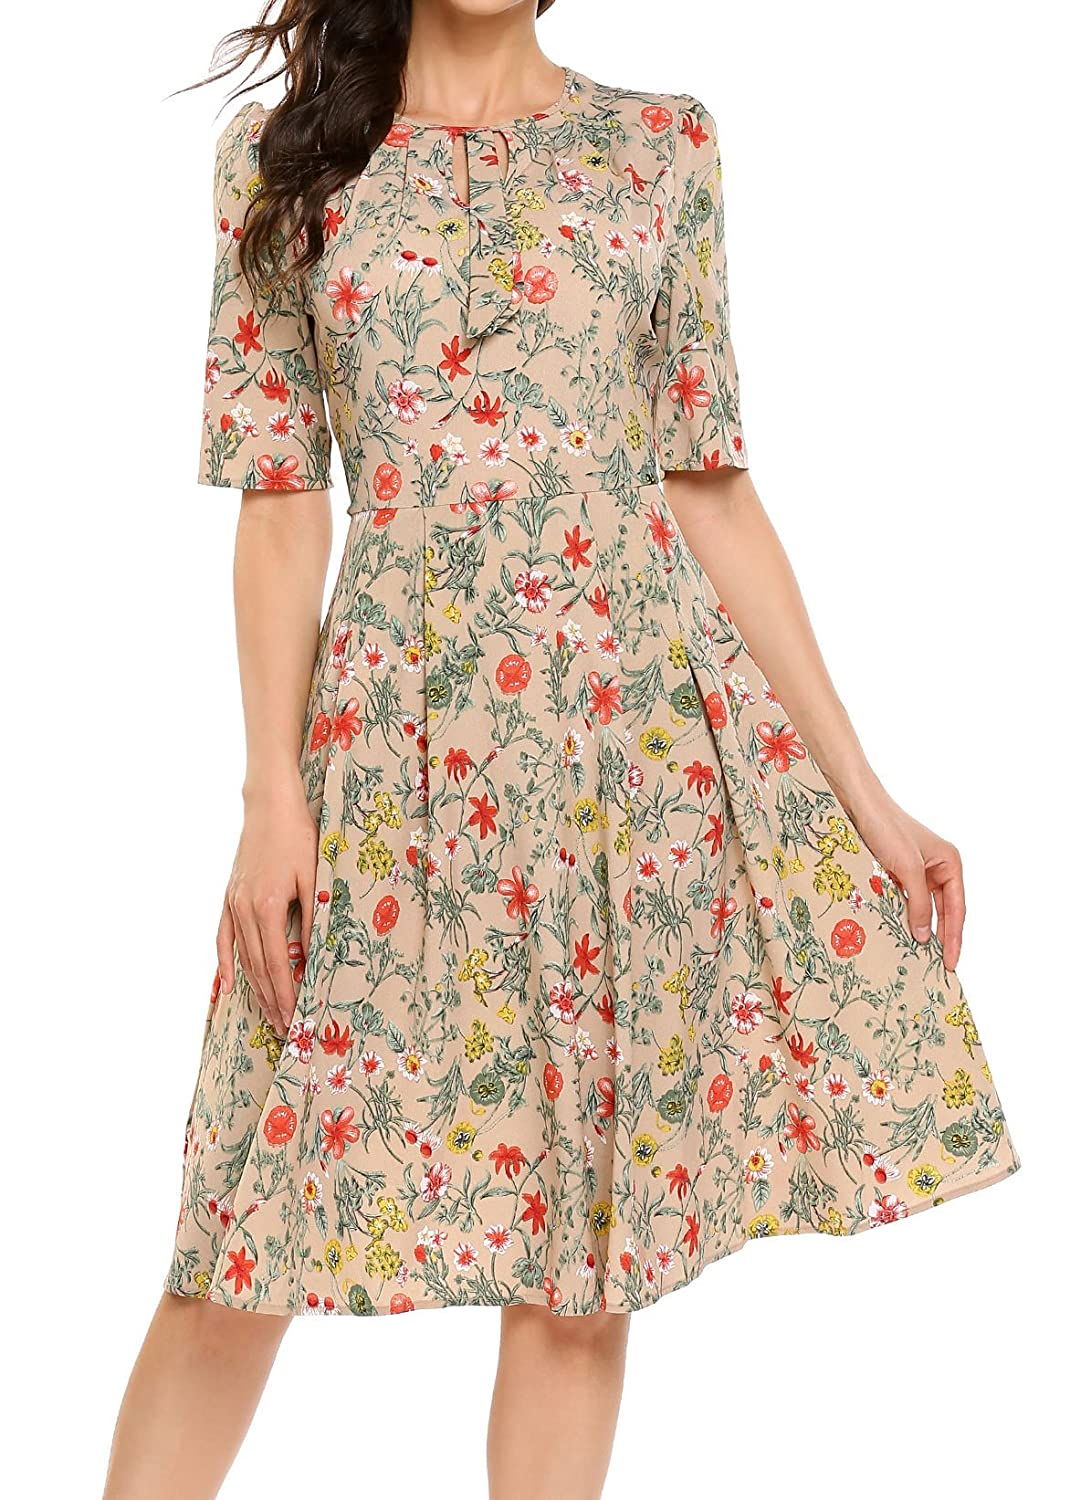 Vintage Tea Dresses, Floral Tea Dresses, Tea Length Dresses Casual Short Sleeve Floral Printed Fit and Flare Party Dress ACEVOG Womens $30.79 AT vintagedancer.com